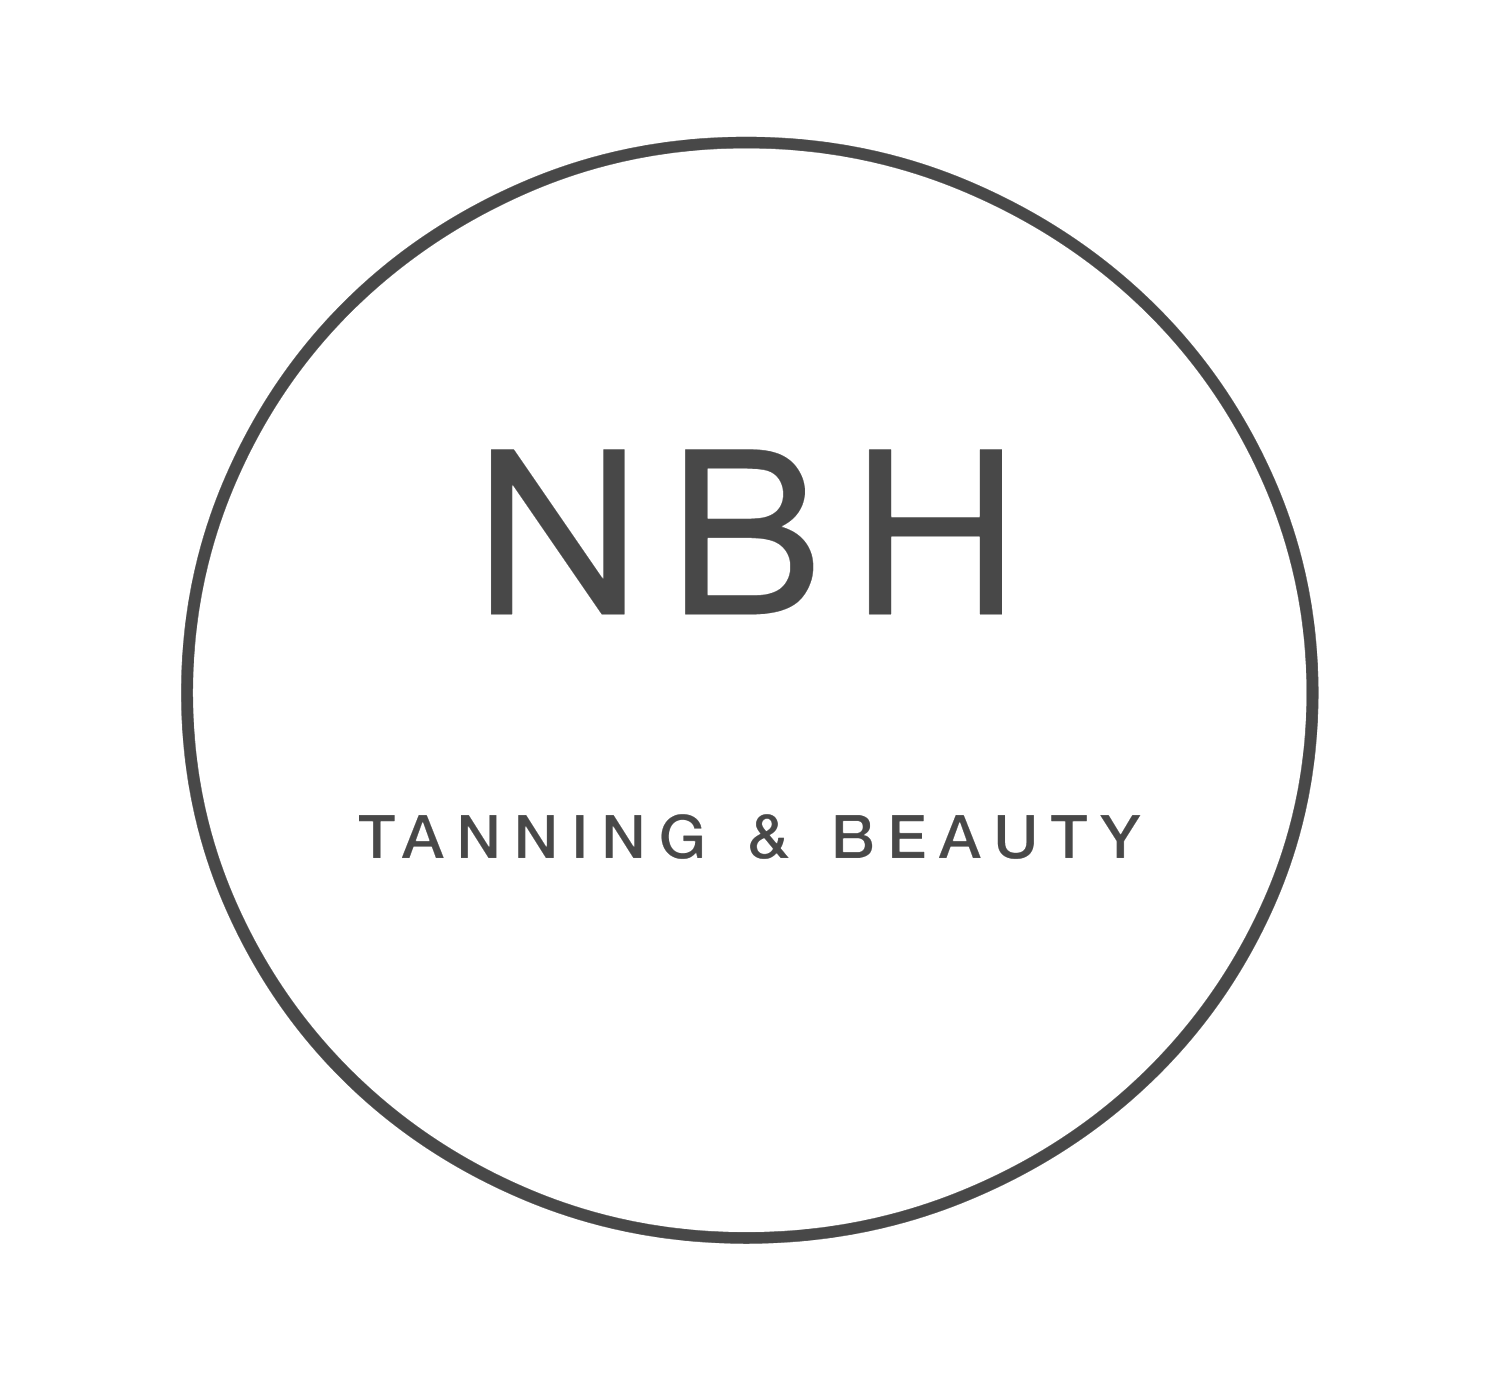 NBH Tanning and Beauty